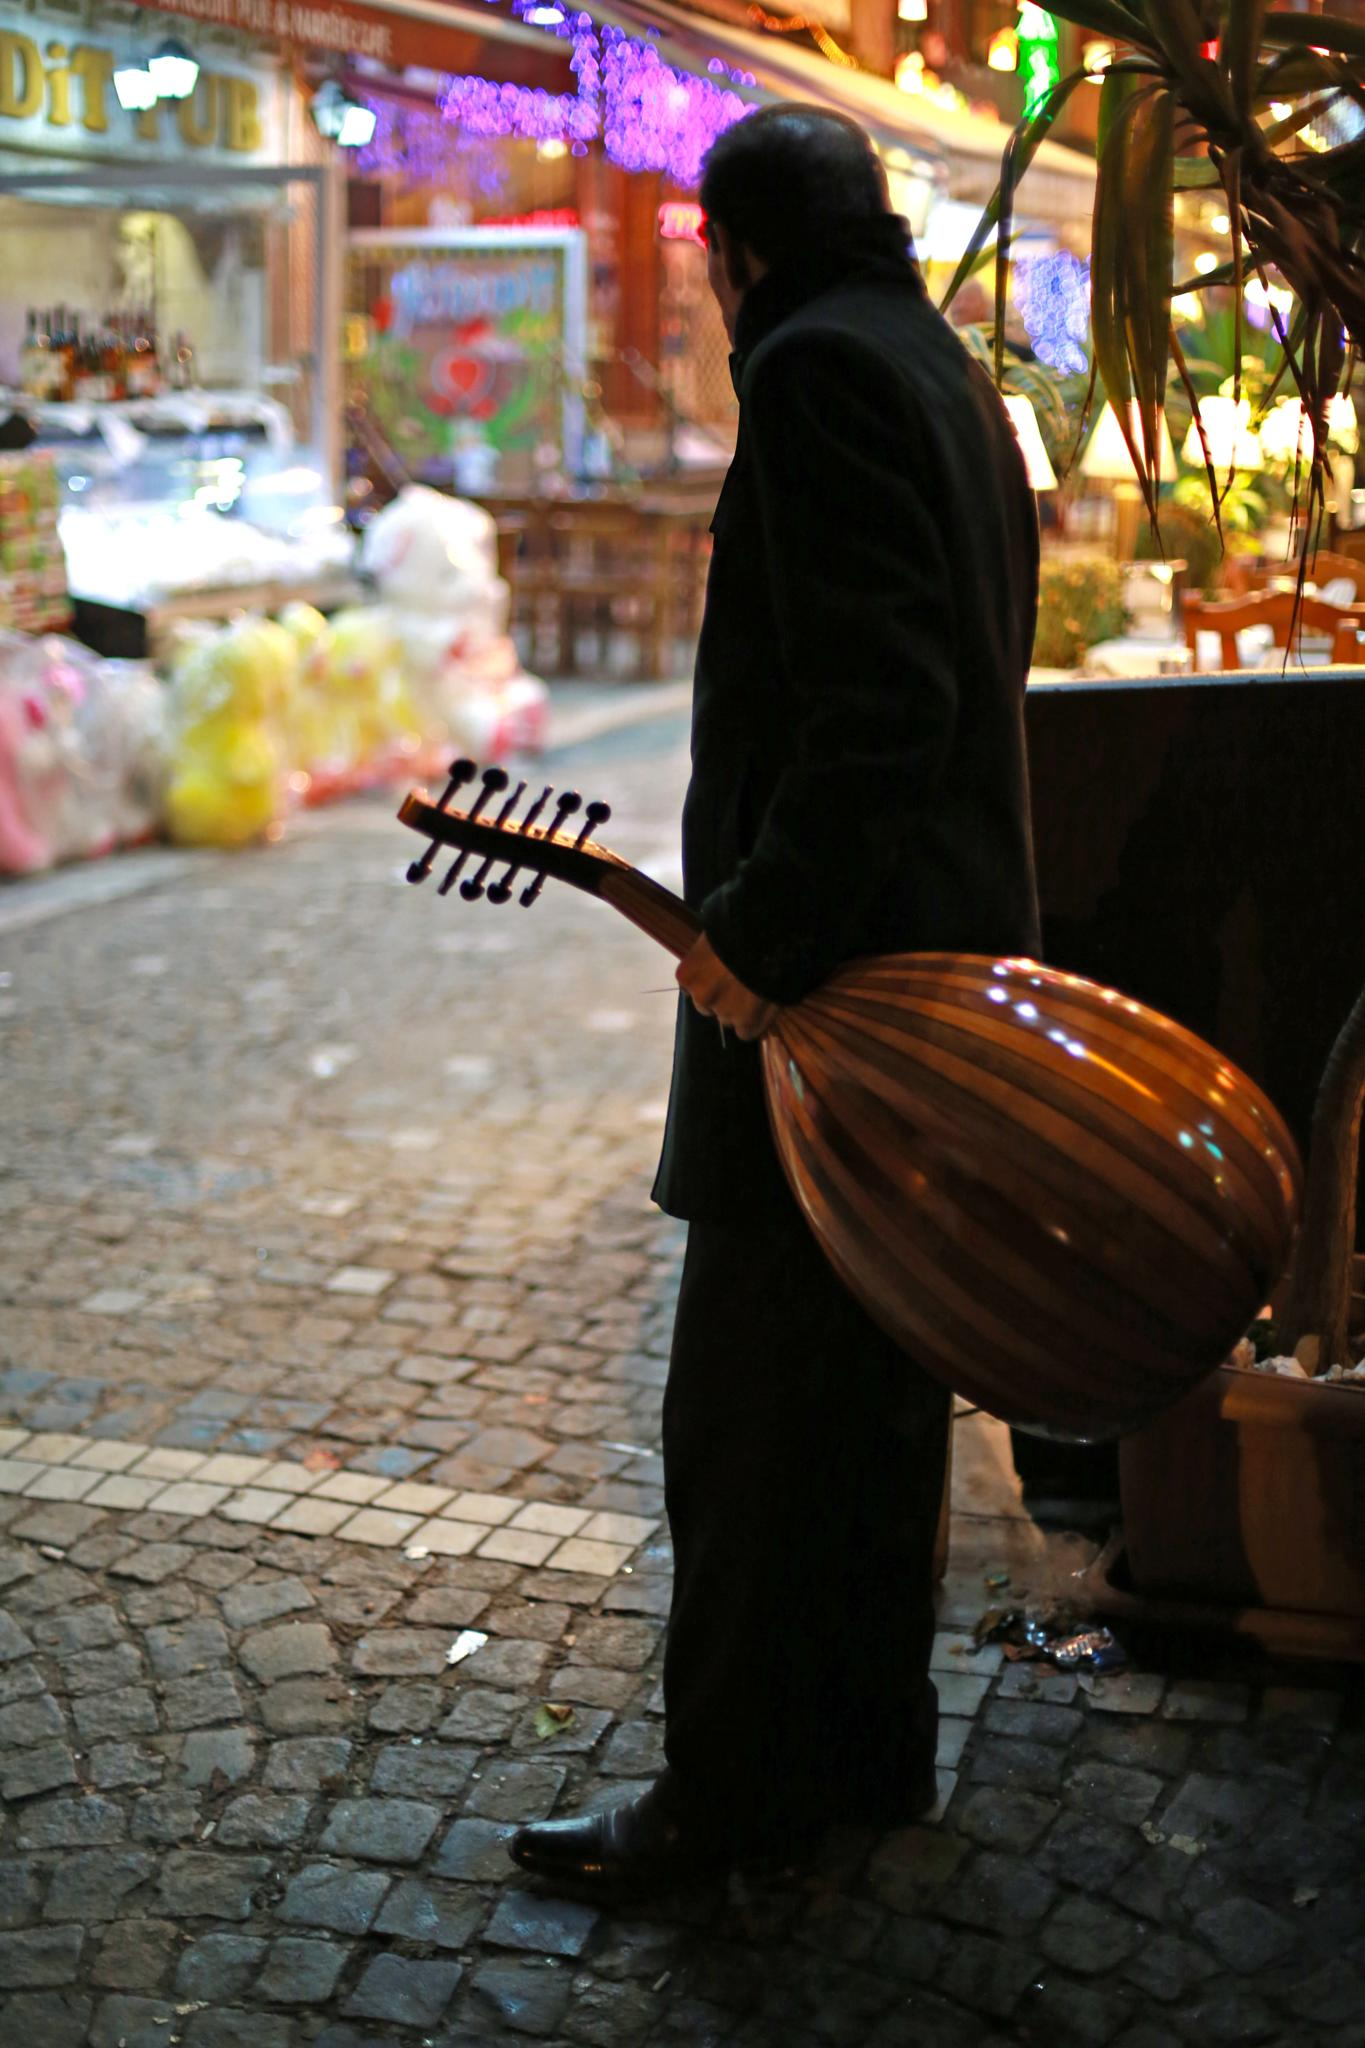 The Oud instrument player by bechara.yared